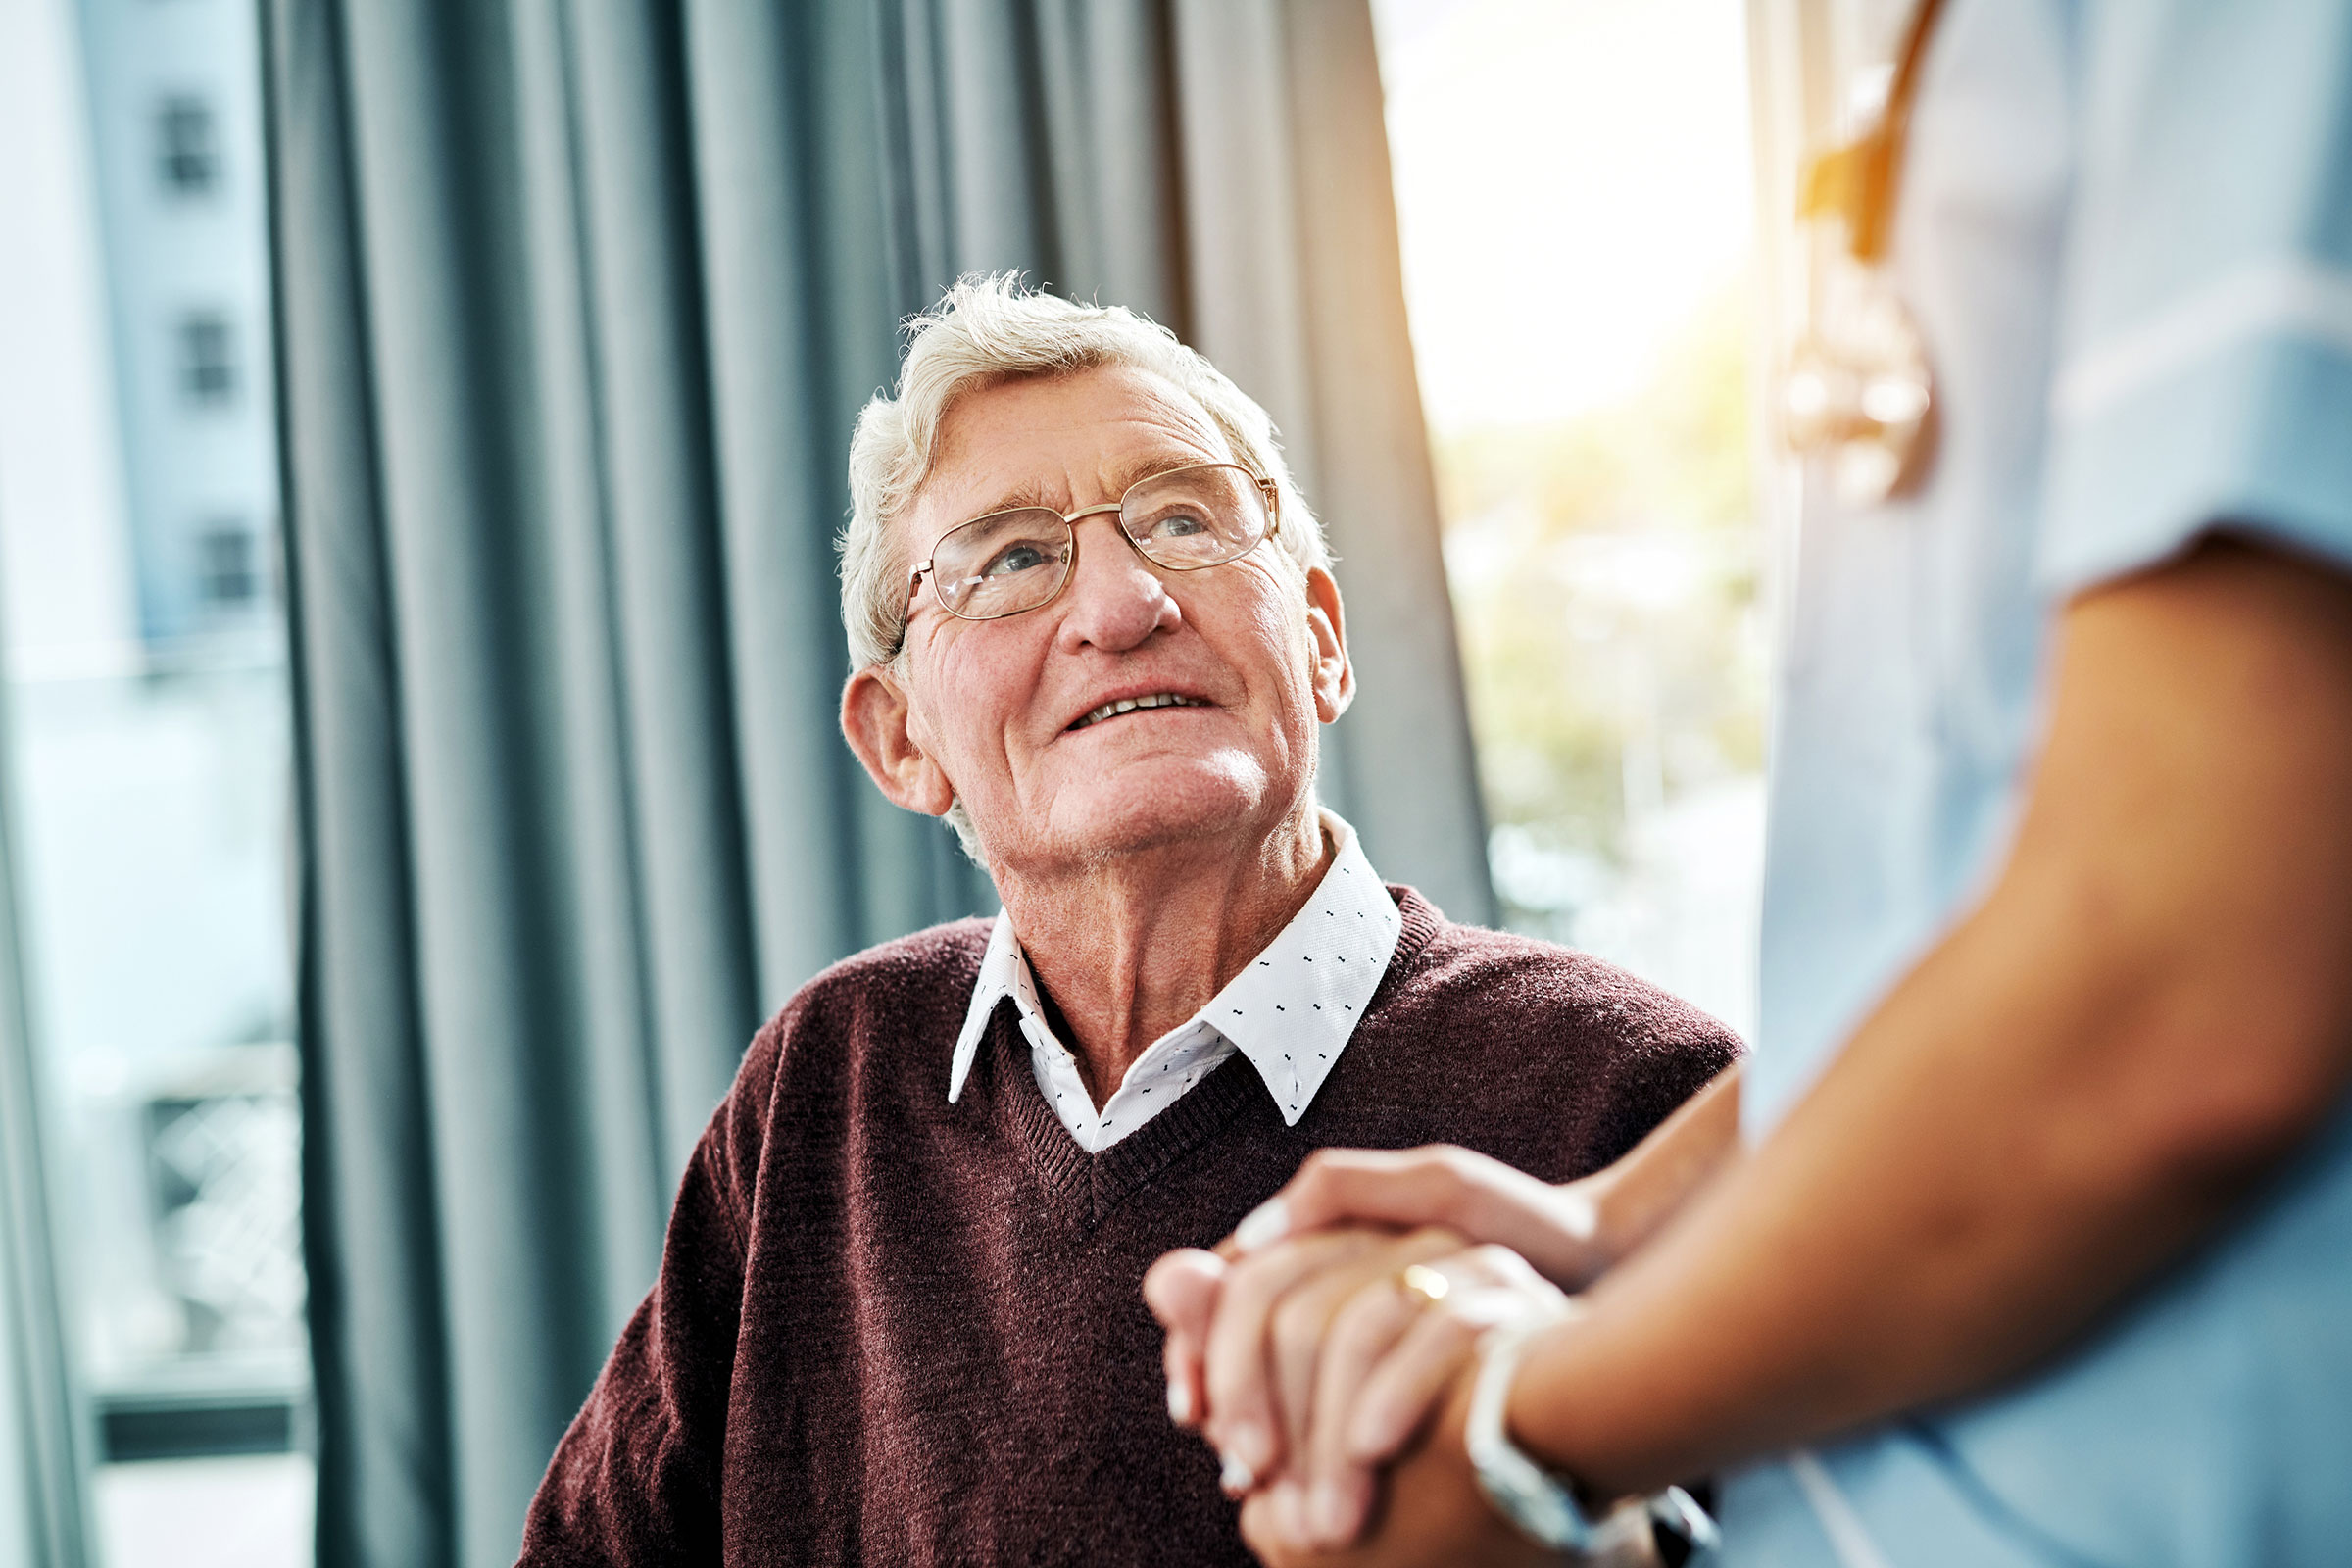 A senior male resident in a maroon sweater holding hands with caretaker in long term care